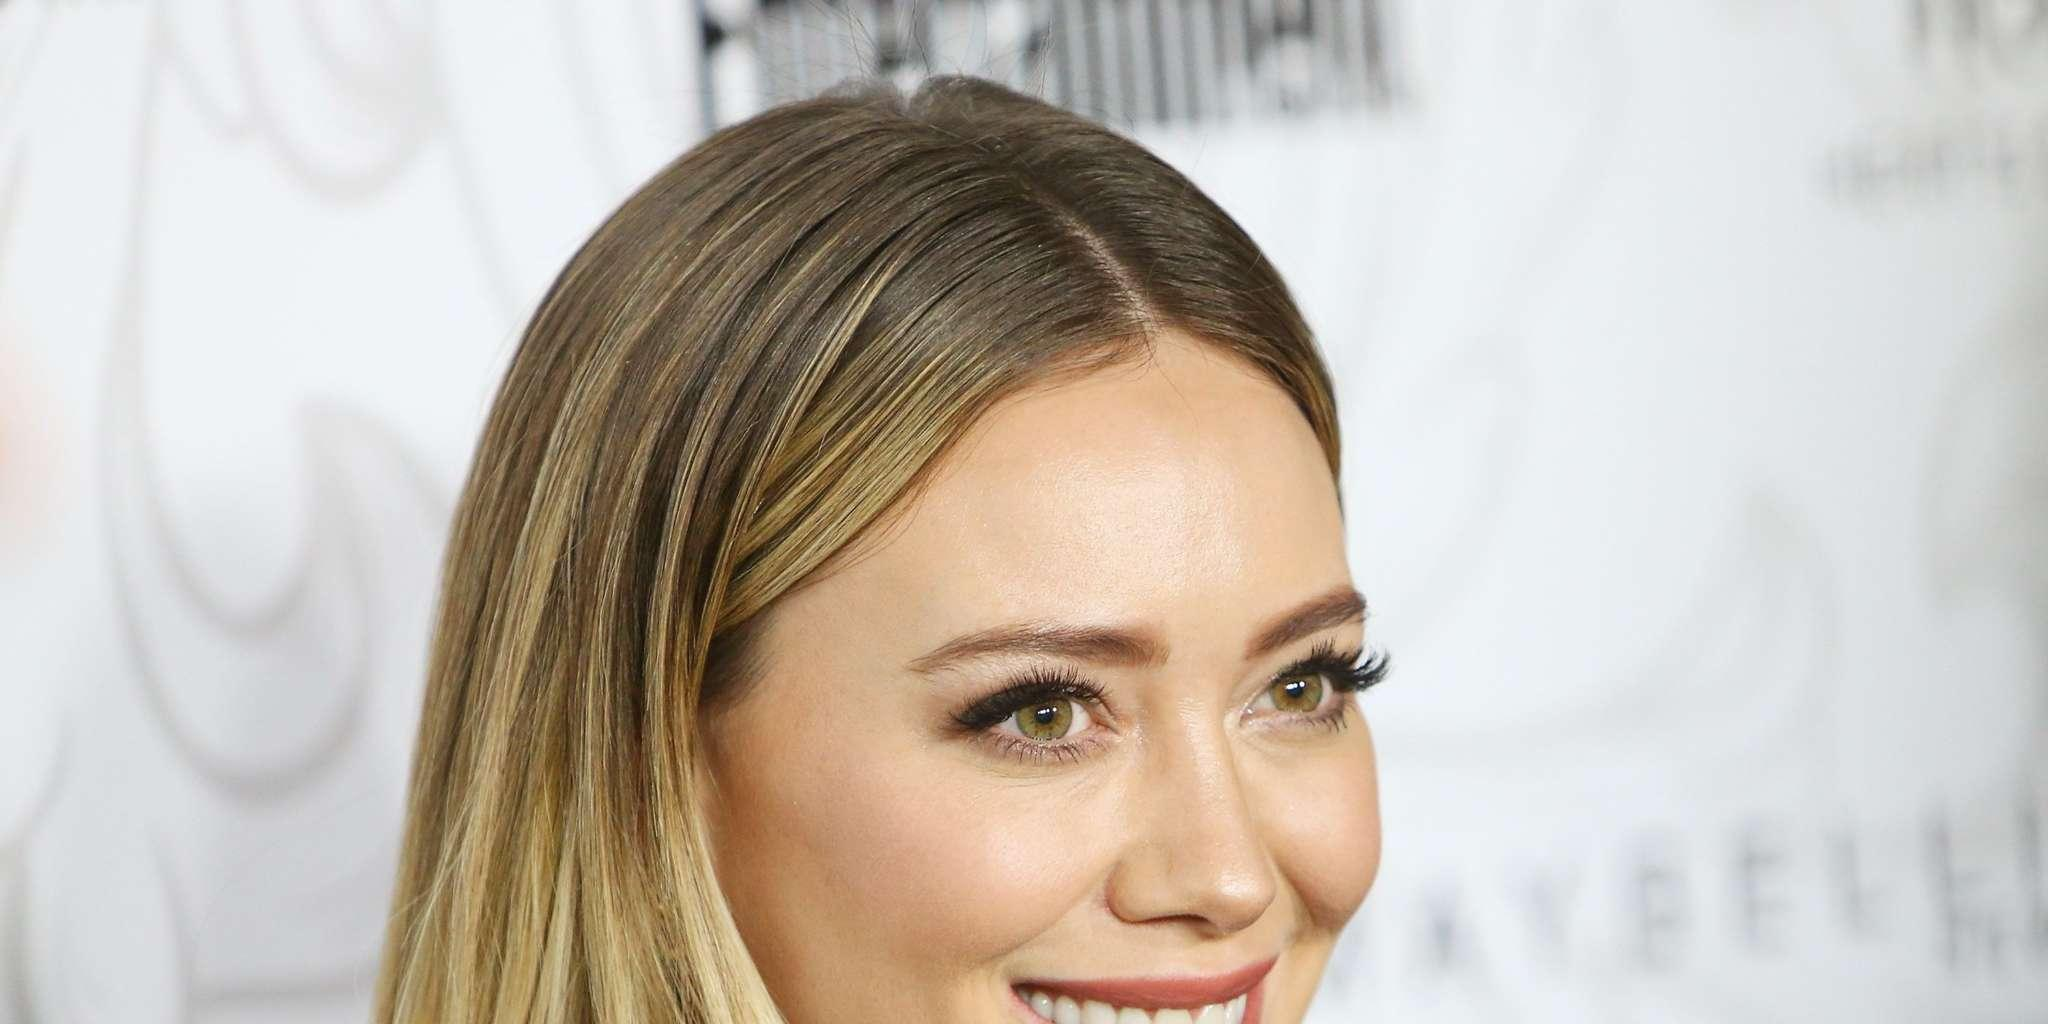 Hilary Duff Mom-Shamed For Piercing Daughter's Ears At Just 8 Months Of Age!